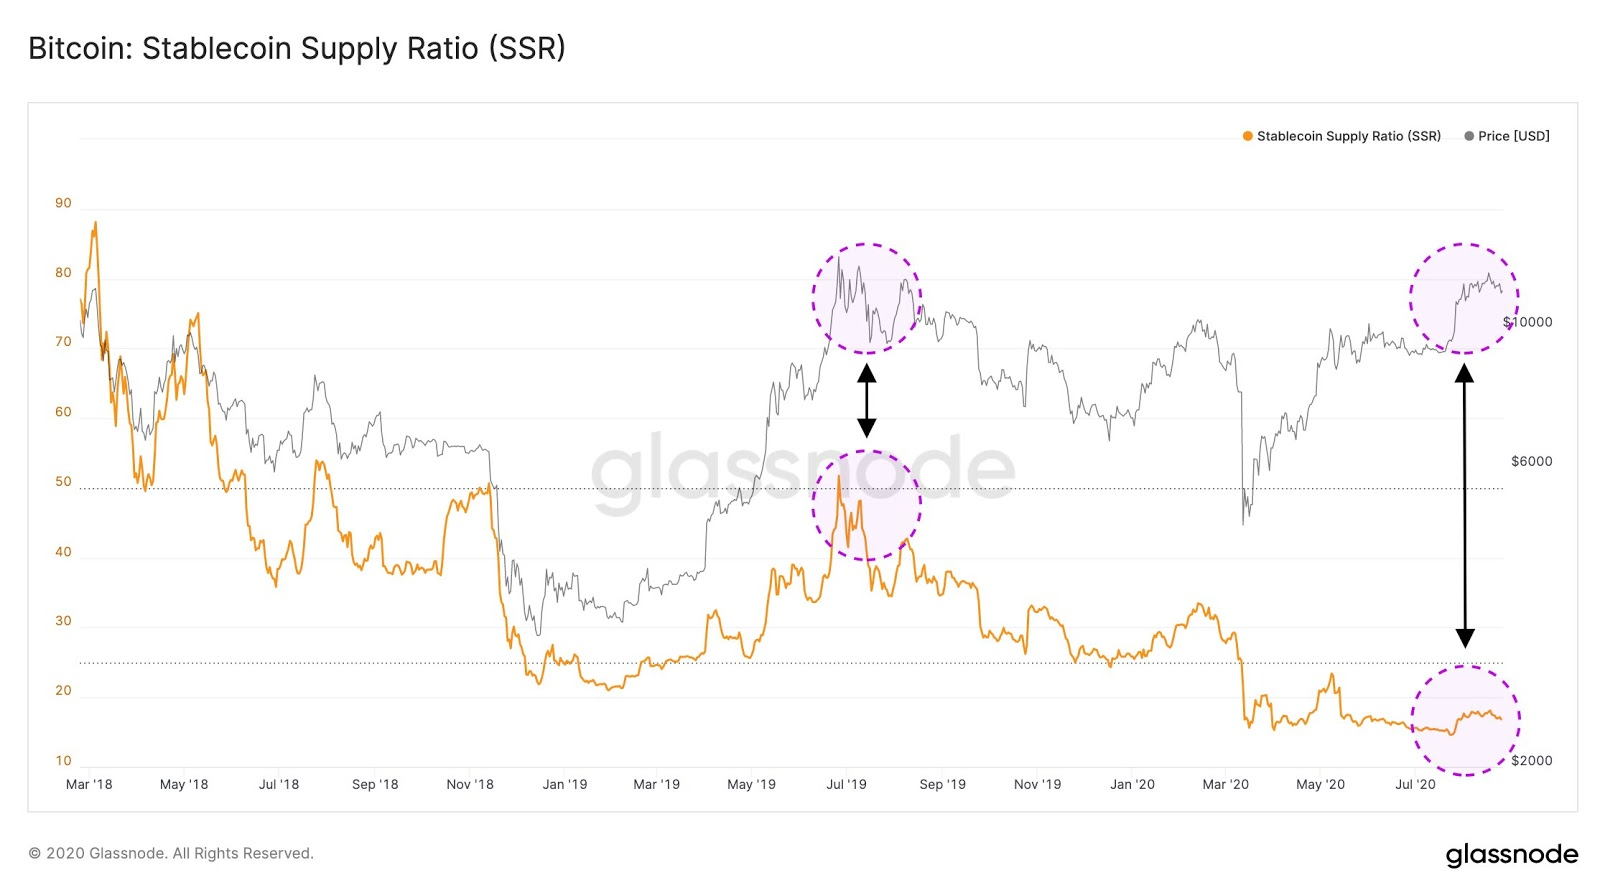 Grafico comparativo tra Bitcoin e stablecoin supply ratio